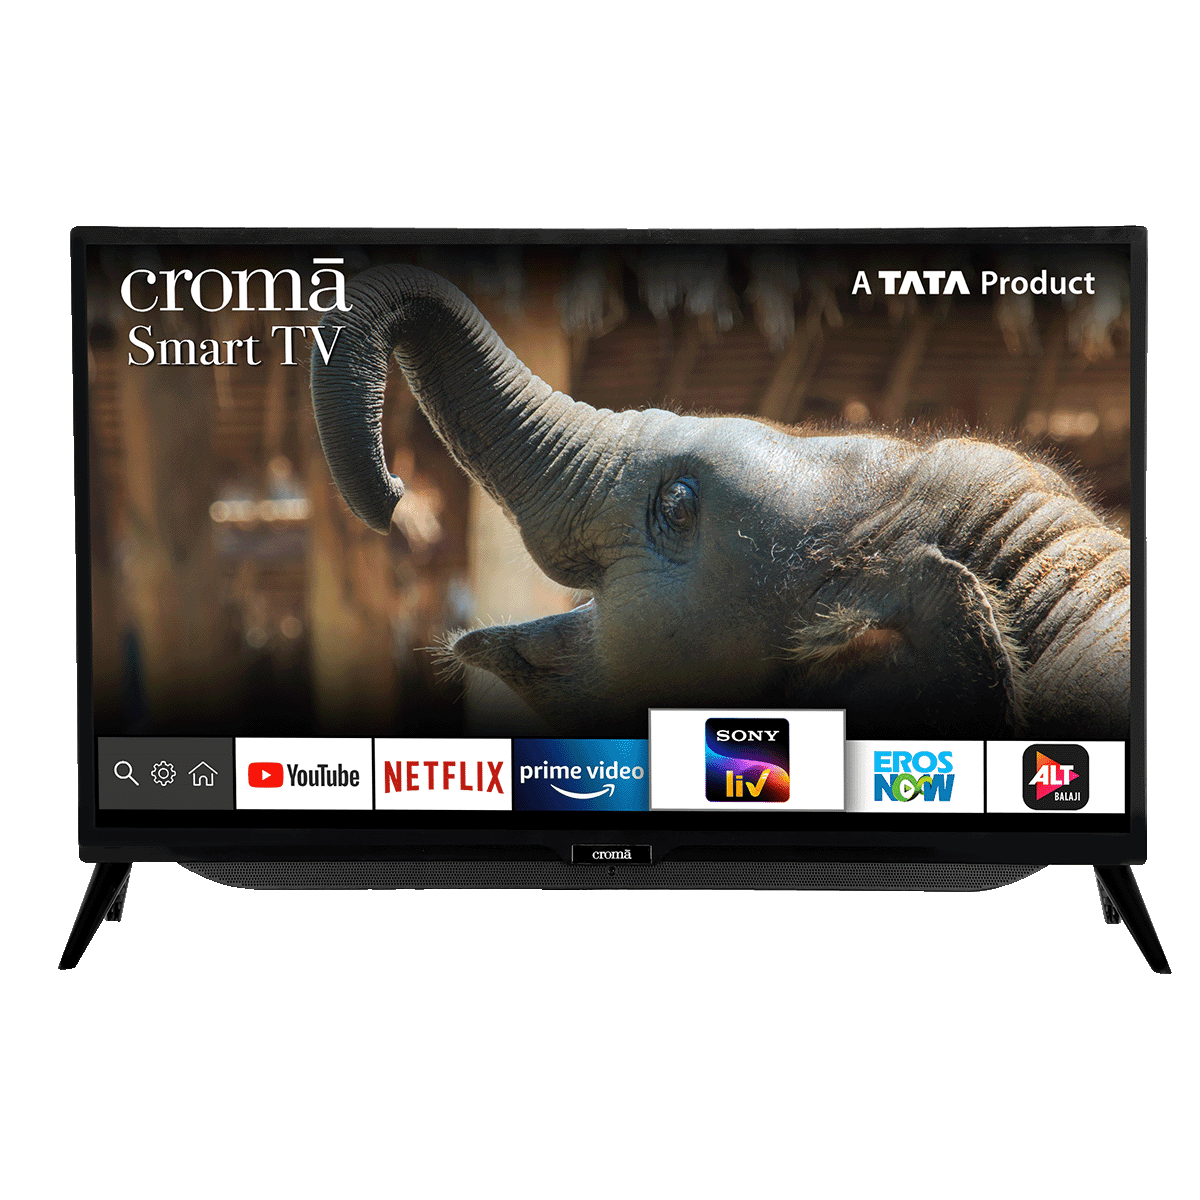 Croma 80cm (32 Inch) HD Ready Smart TV (Dual Box Speakers, CREL7363, Black)